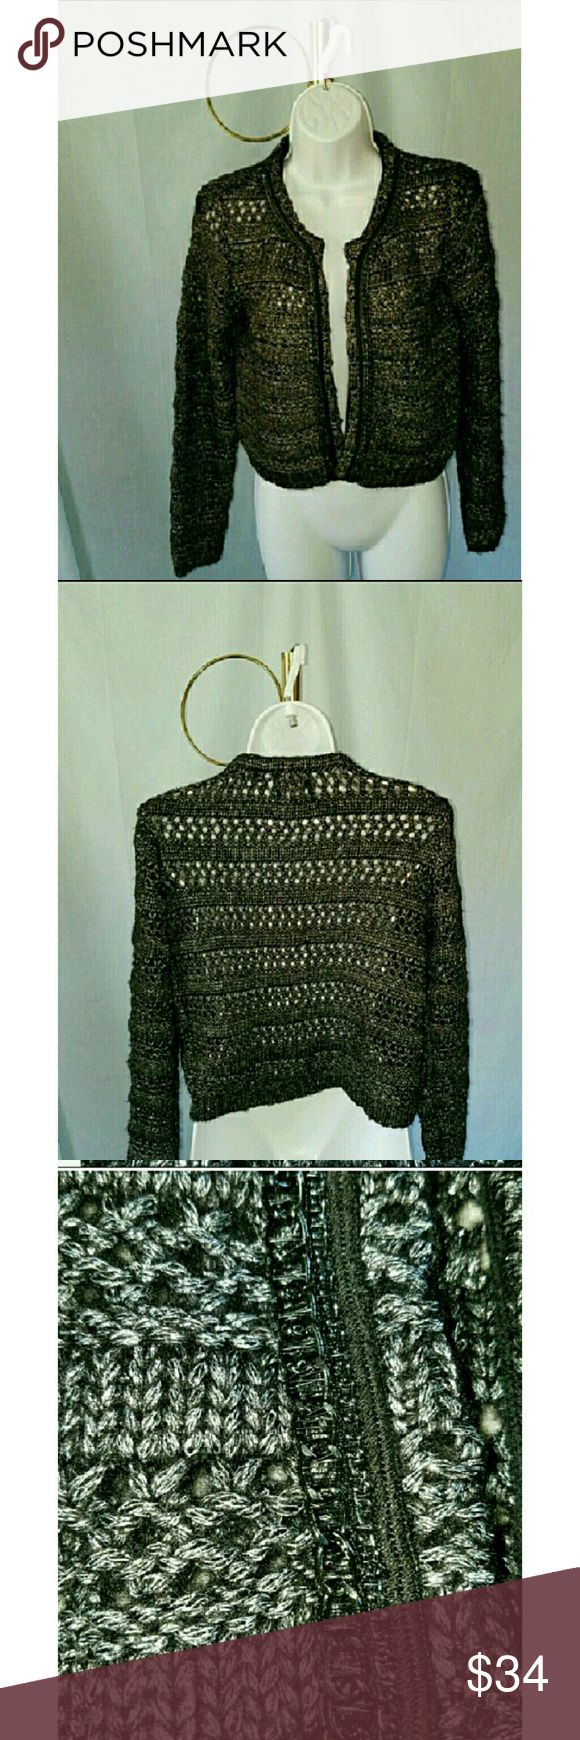 """GUESS SPARKLY BLACK AND SILVER CARDIGAN GUESS SPARKLY BLACK AND SILVER CARDIGAN has an open front with chain links used as trim around the opening.   Size Small 29% polyester 26% wool and 19% metallic.  Armpit to armpit is 18. 75 """" and shoulder to hem length is 18.5"""".All measurements are approximate and taken flat Guess  Sweaters Cardigans"""